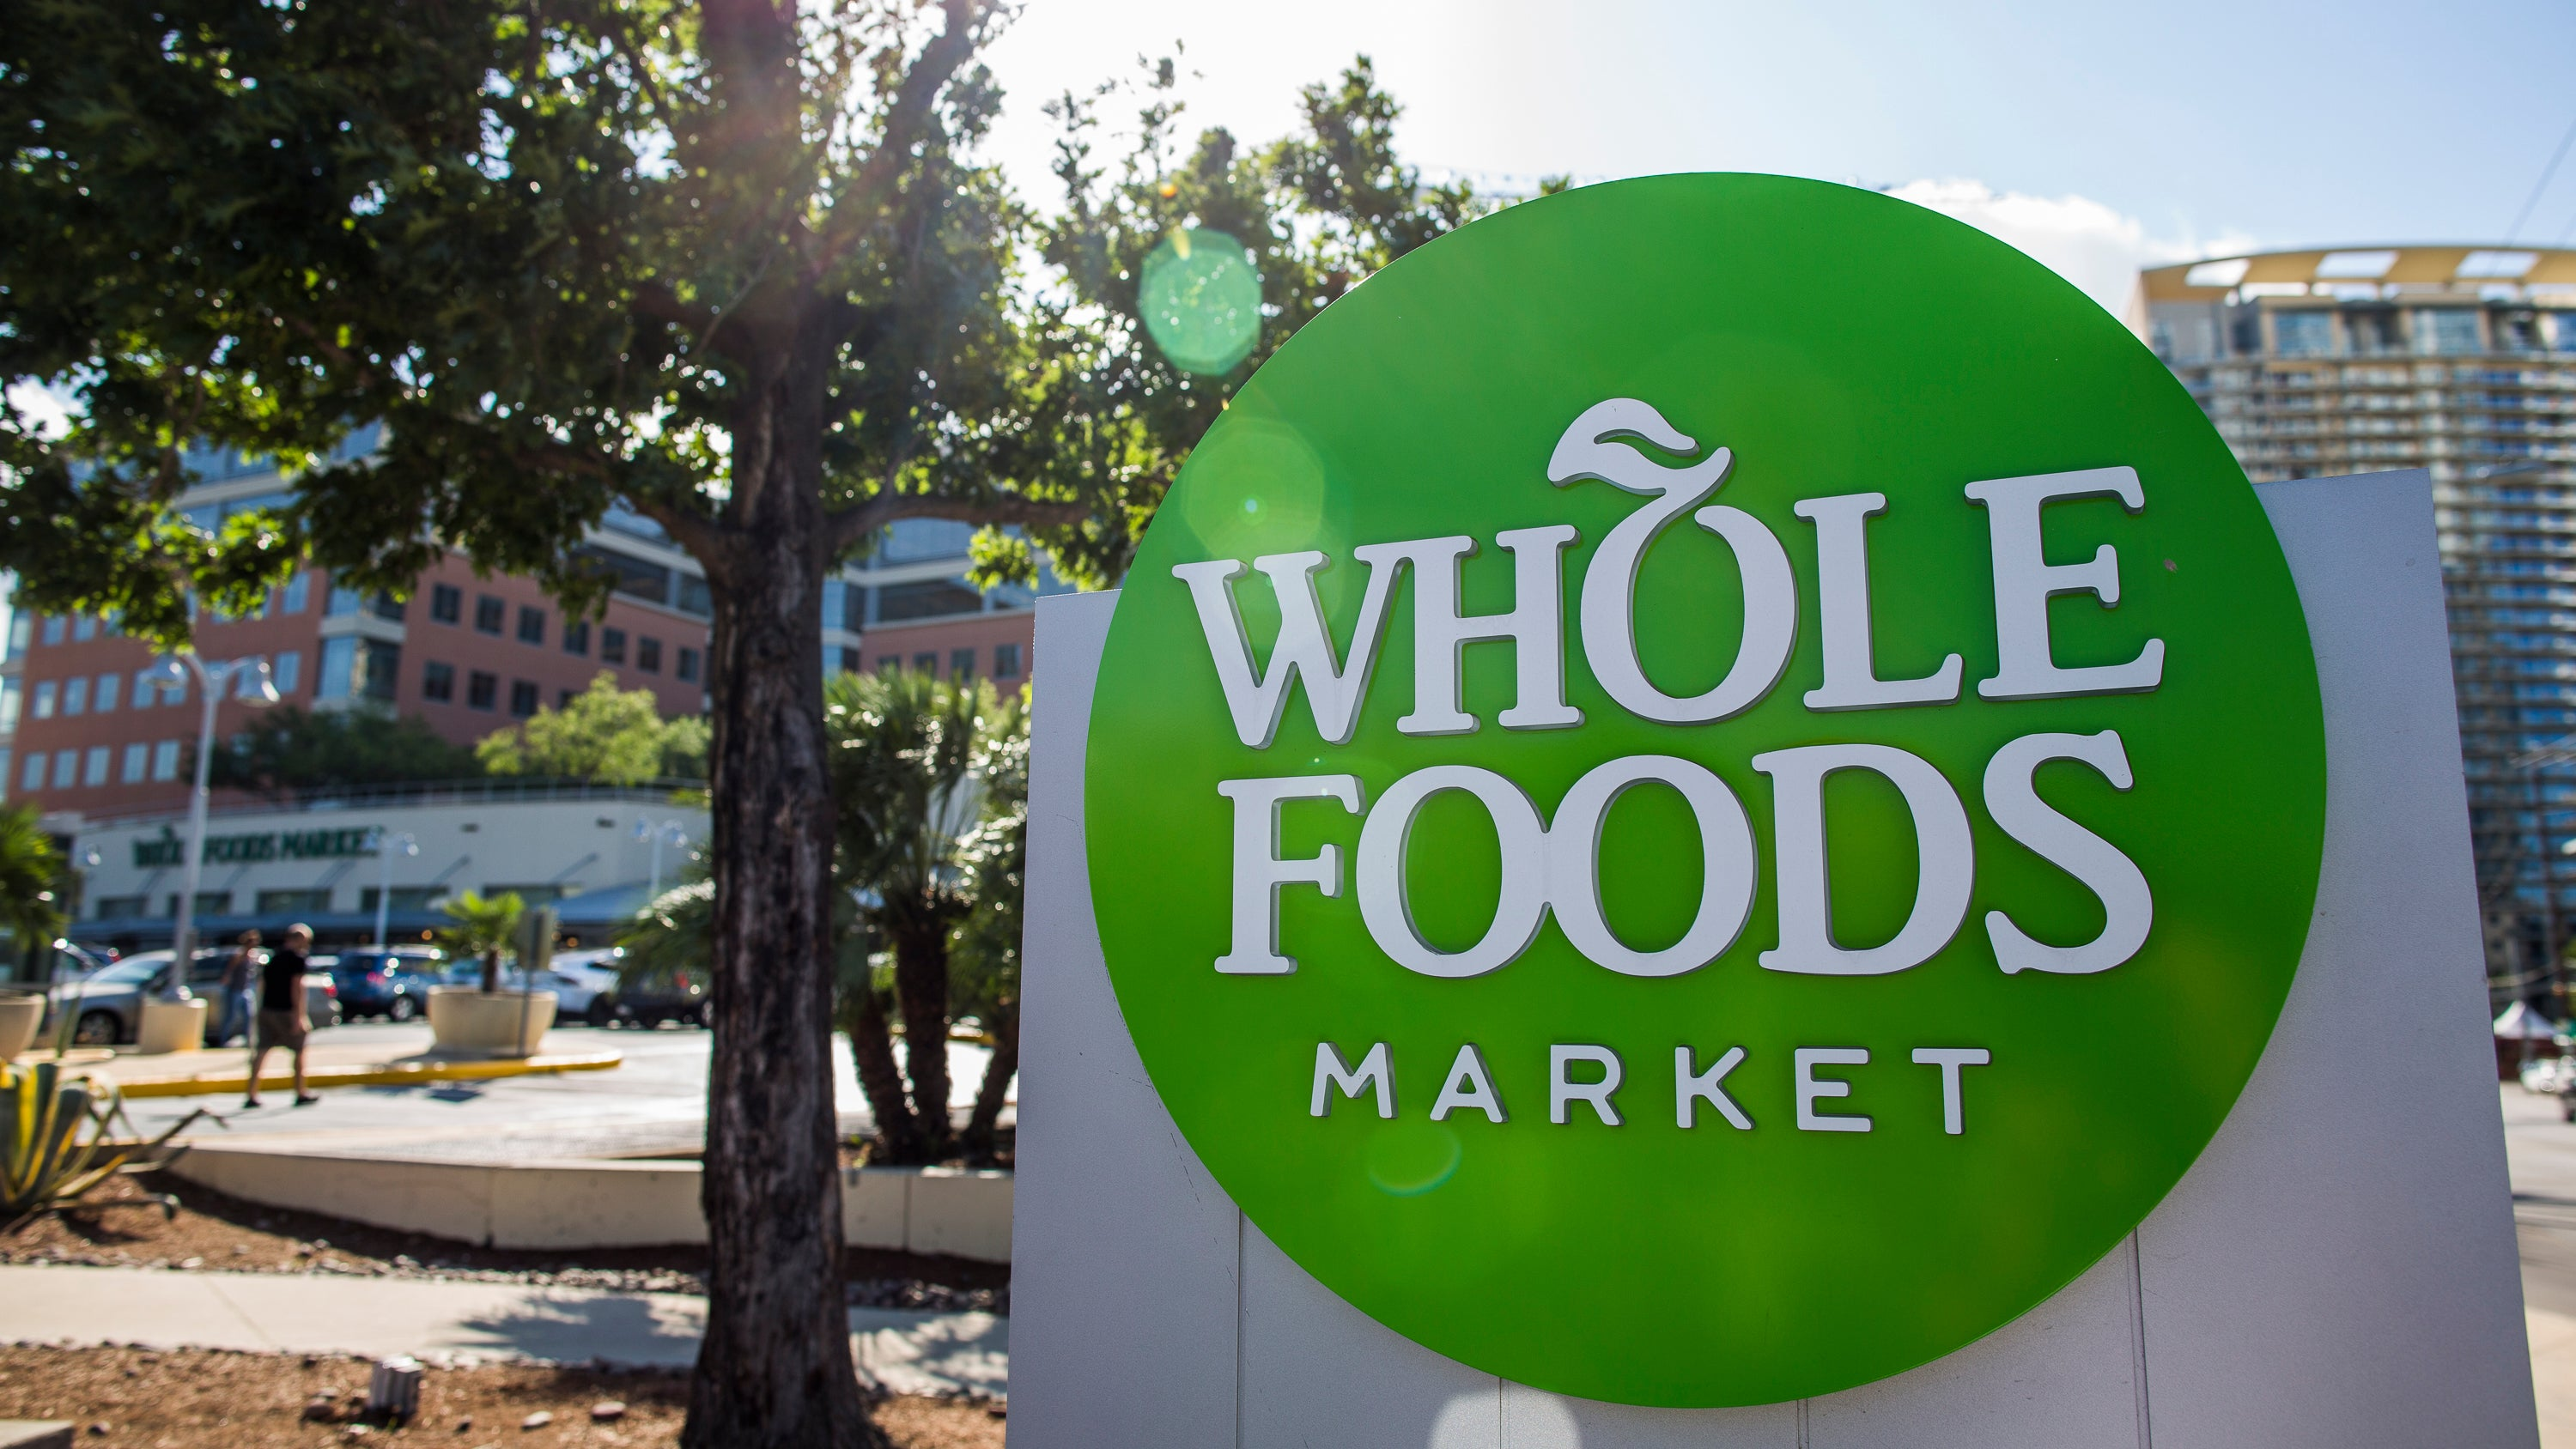 Whole Foods price cuts hit hardest at Trader Joe's, Sprouts